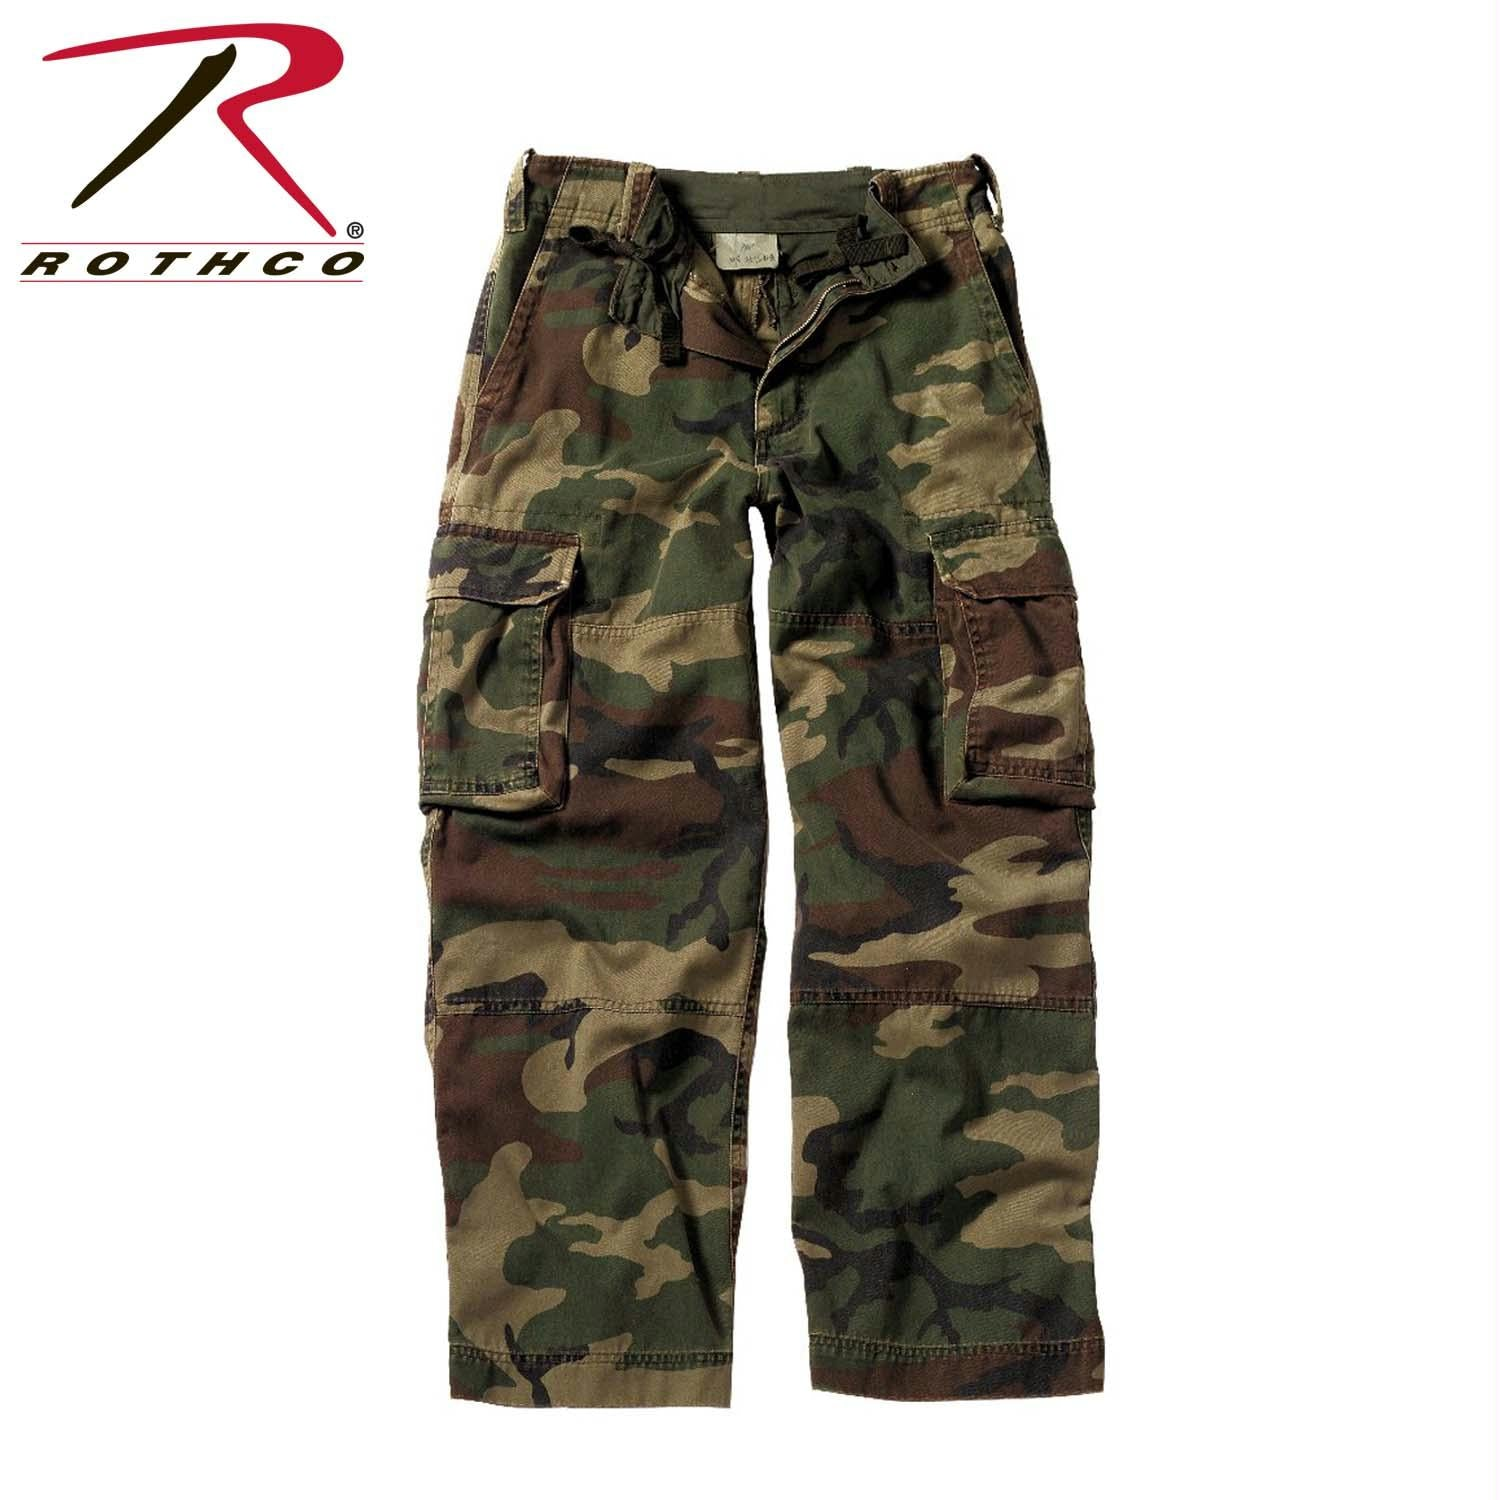 Rothco Kids Vintage Paratrooper Fatigue - Woodland Camo / XS